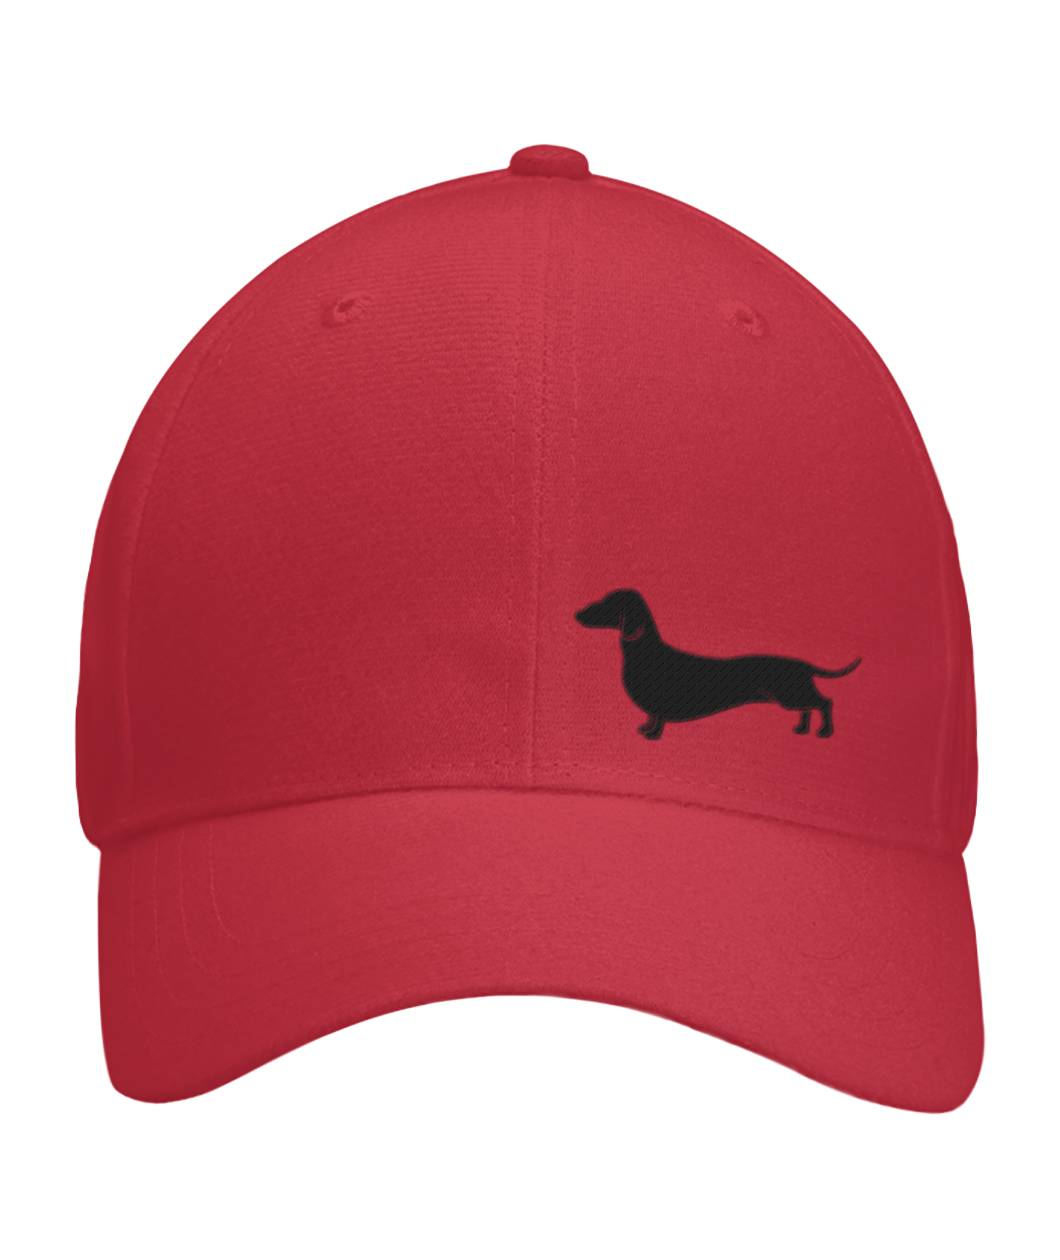 Daschund, Embroidered Fitted Cap